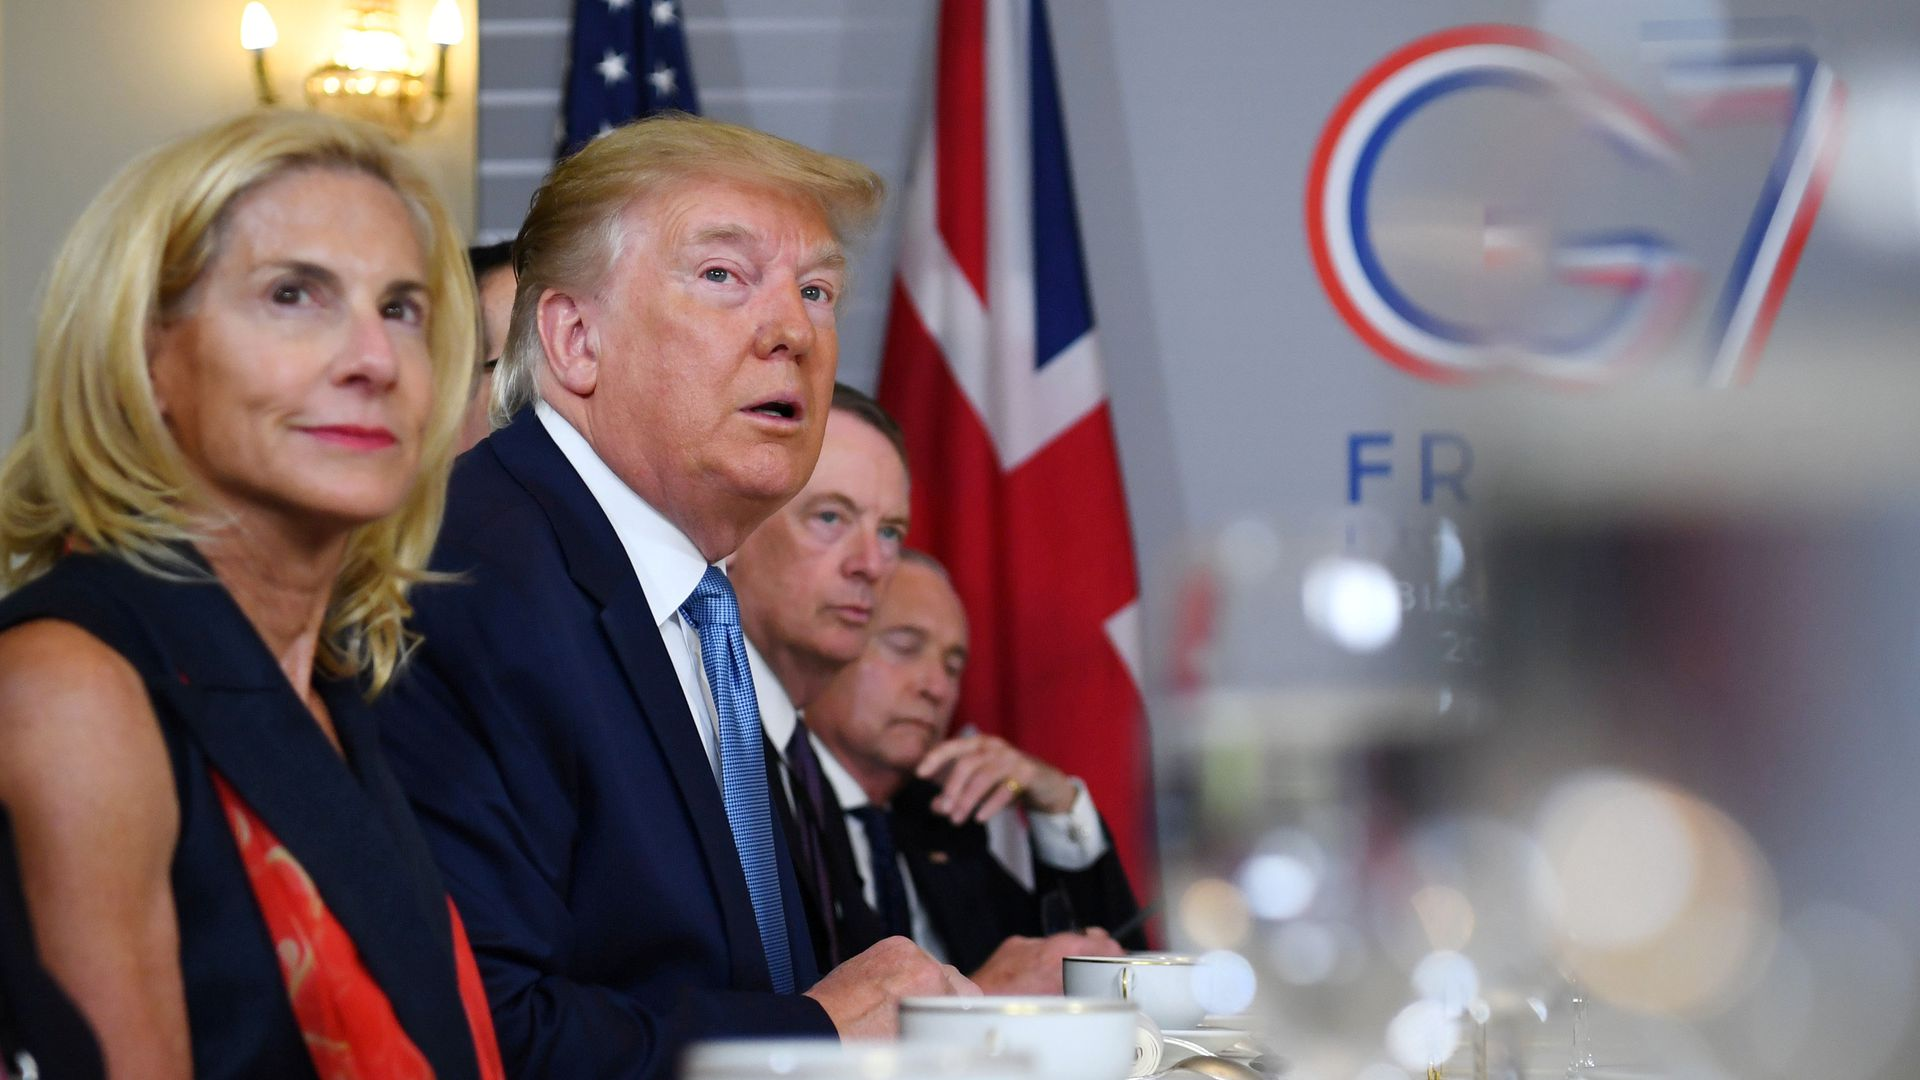 President Donald Trump attends a bilateral meeting at the G7